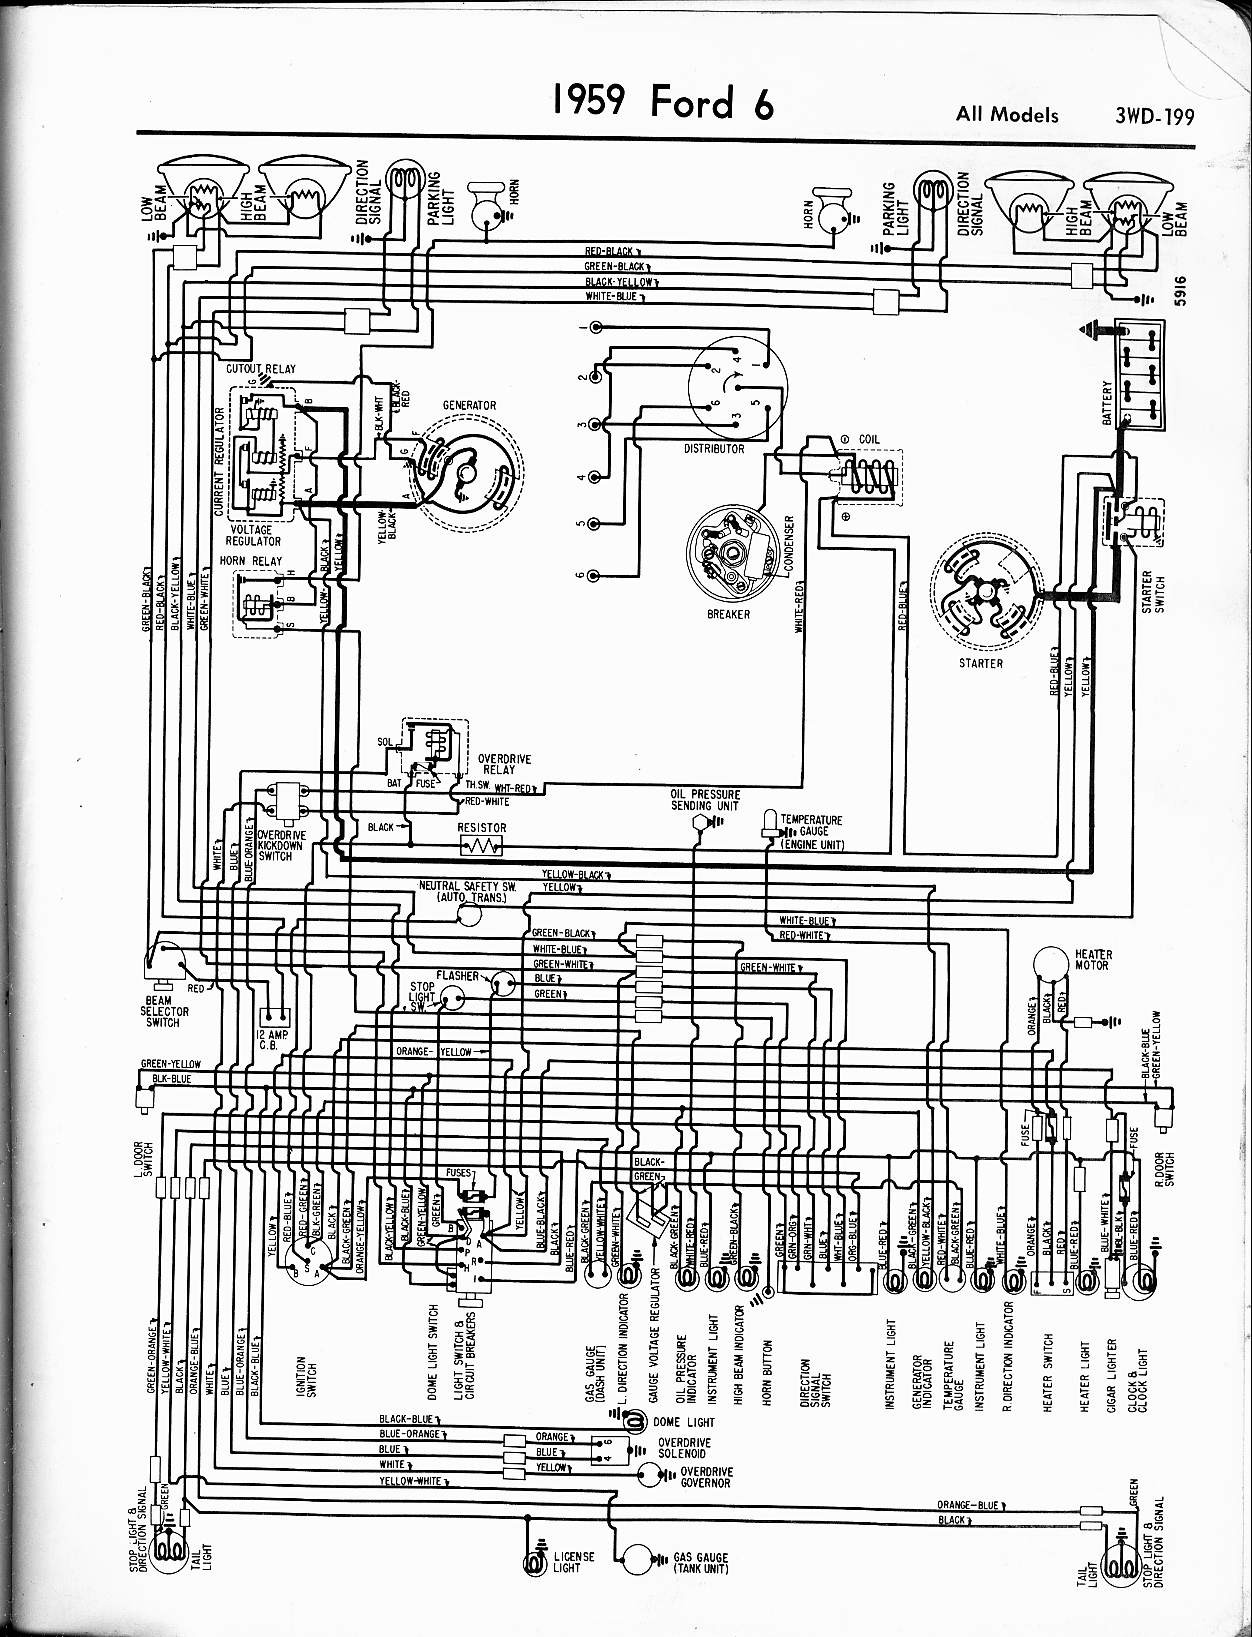 Ford Truck Wiring Diagrams 1997 ford F 250 Wiring Diagrams